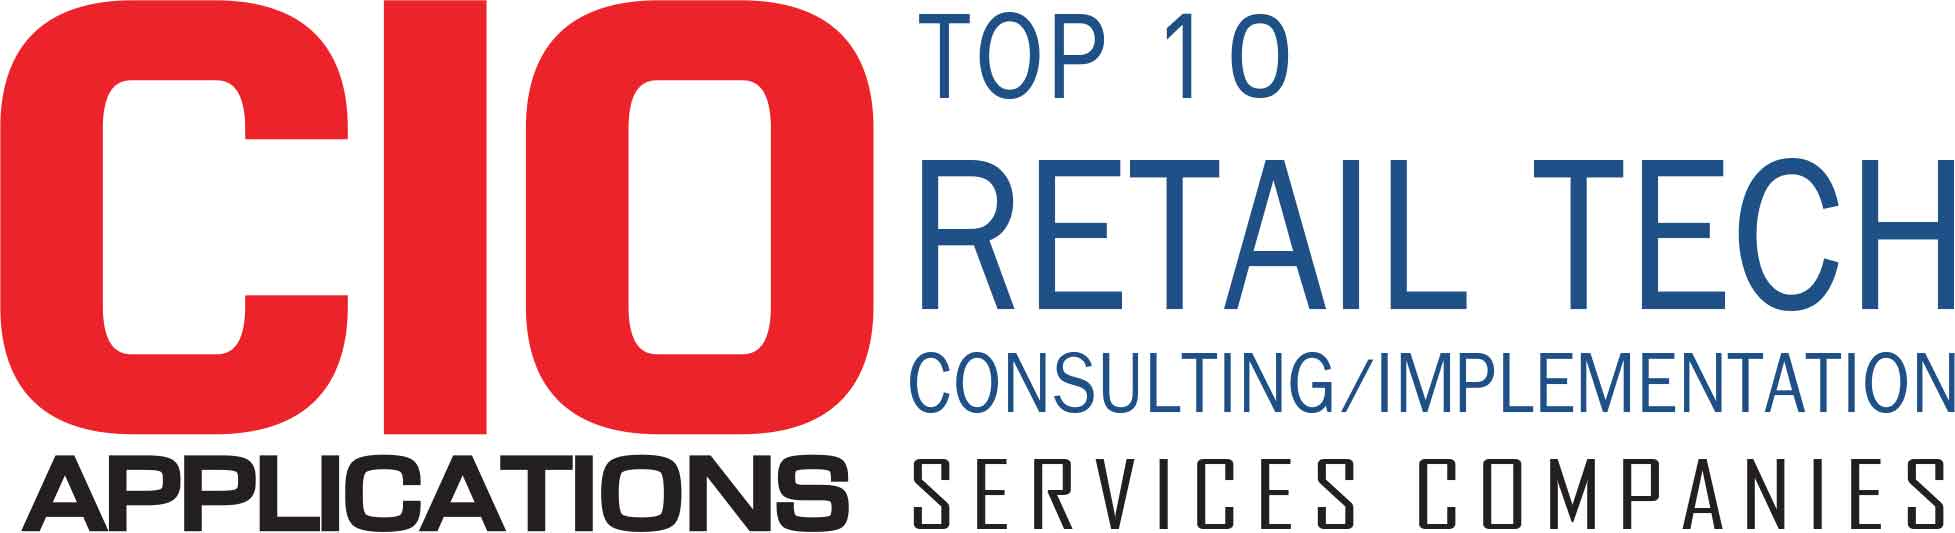 Top 10 Retail Tech Consulting/Implementation Services Companies - 2018